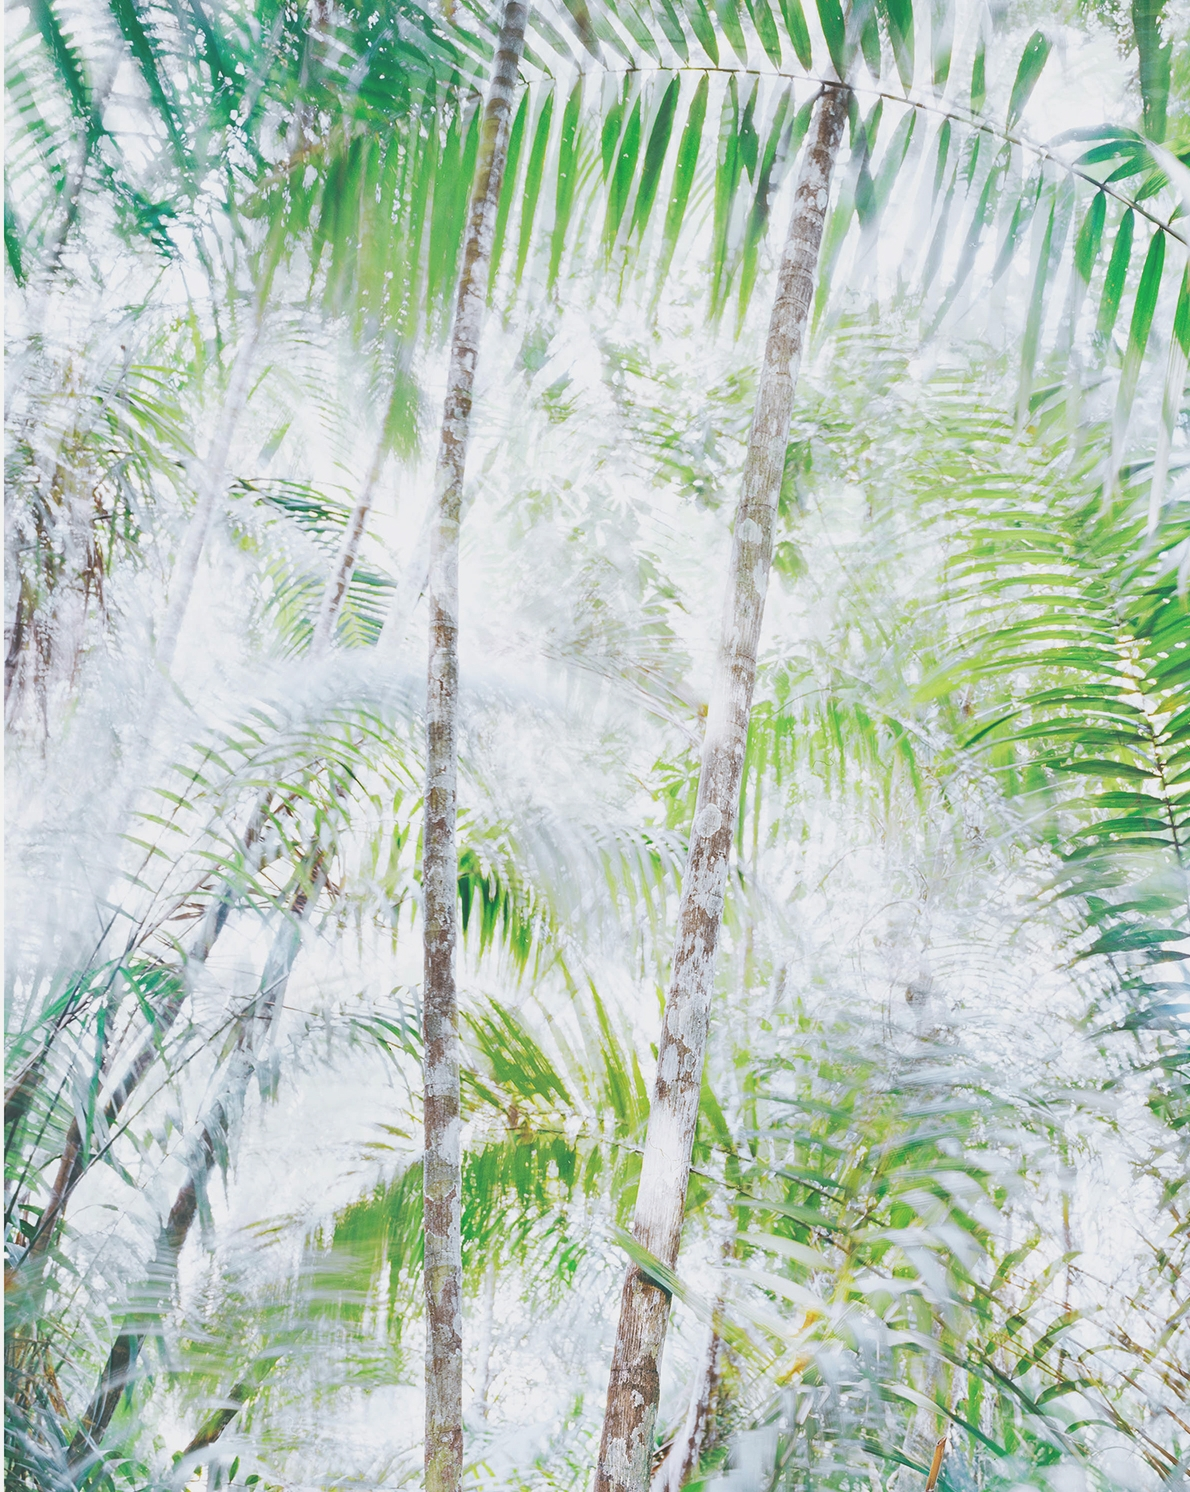 CHRISTINA SEELY  Respiro 28,  2017 Vellum + Archival Inkjet Prints Overlaid  Available sizes: 37.5 x 30 in., Edition of 4 + 2AP 25 x 20 in., Edition of 4 + 2AP